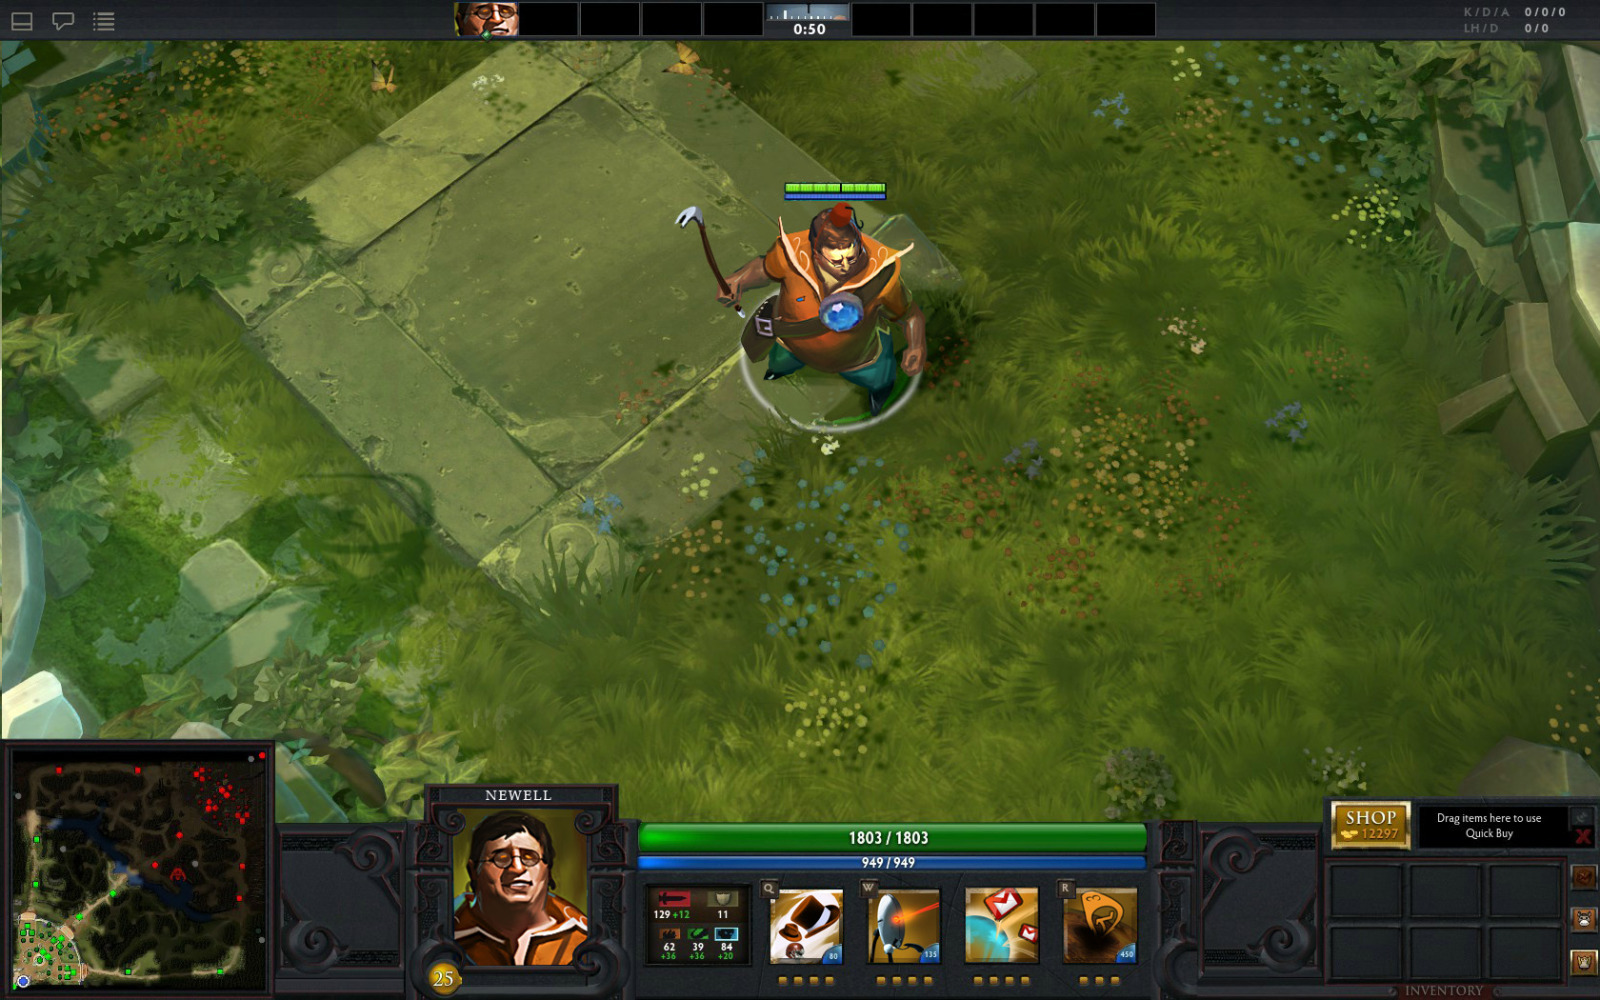 gabe newell dota 2 hero guide neutral creeps dota 2 news from